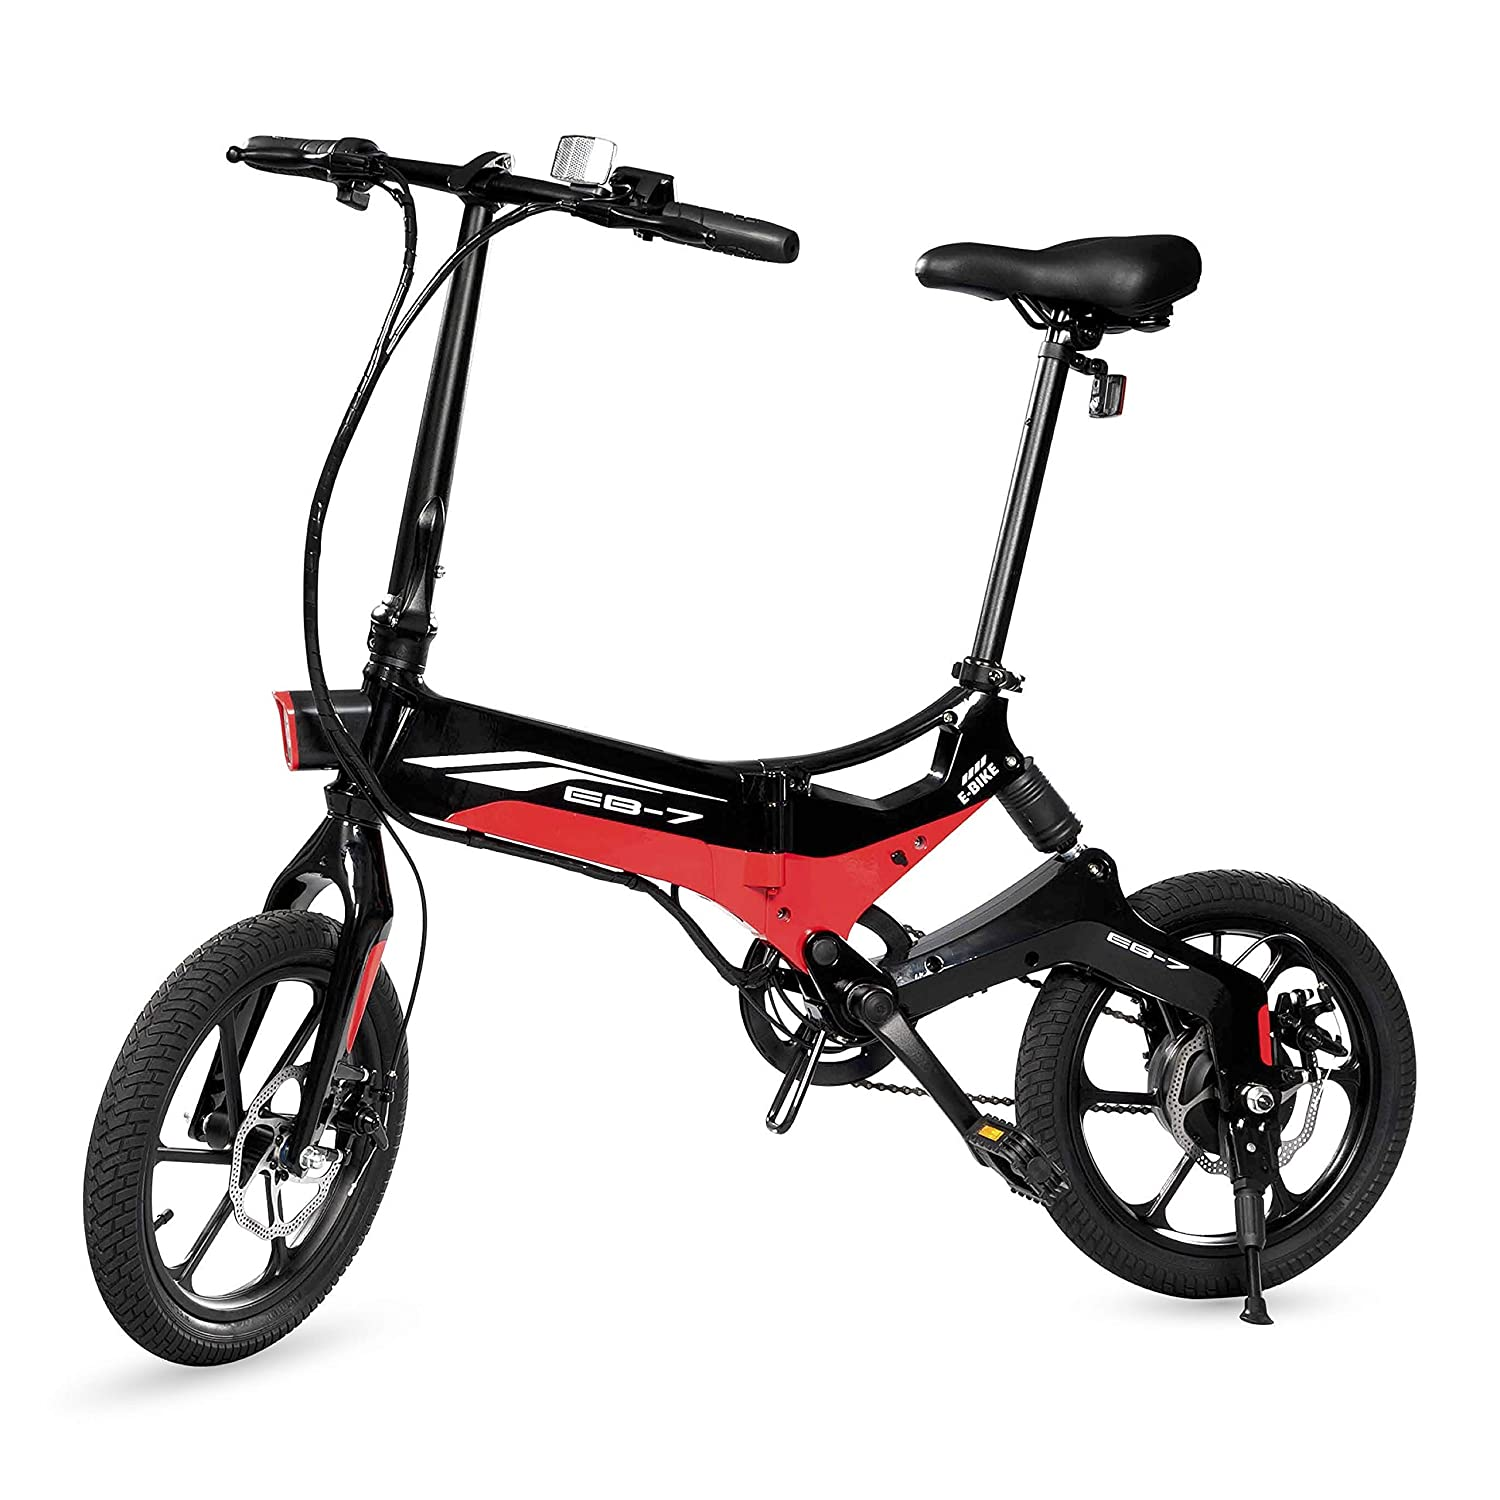 Electric Bicycles Eco Velo Swagwheel Smartwheel Hoverboard 65inch Silver Swagtron Swagcycle Eb 7 Elite Folding Bike 16 Inch Wheels Swappable